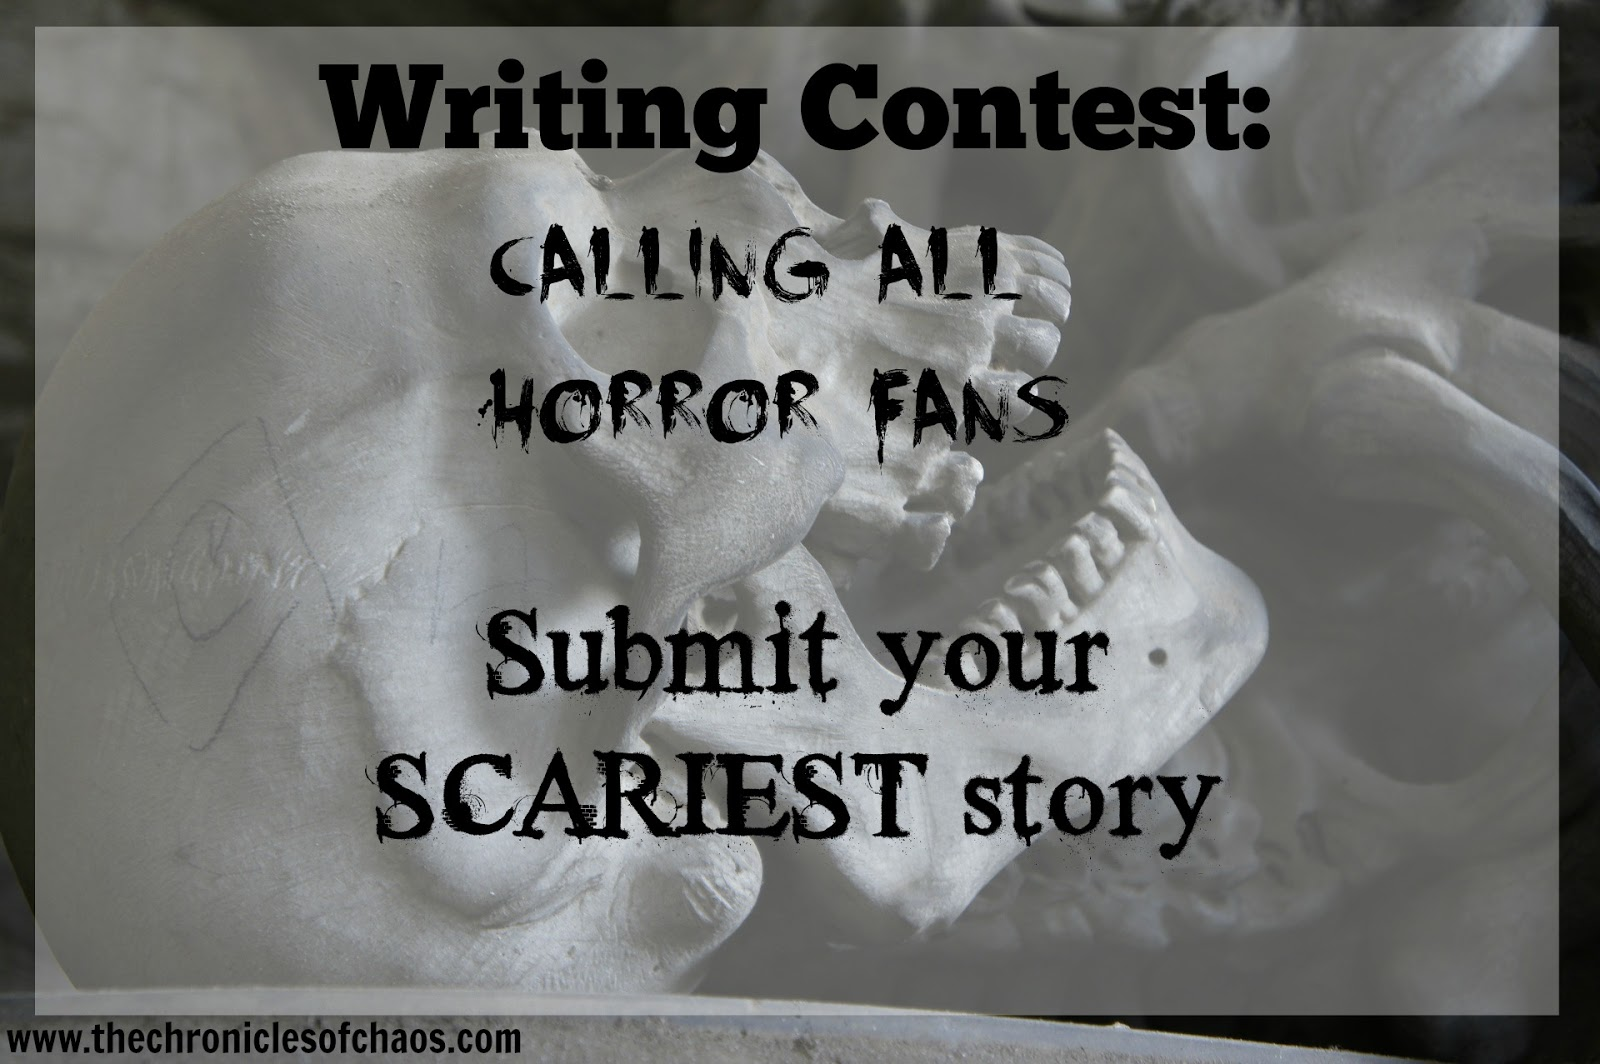 scary halloween writing tis the season a truck stop horror full  the chronicles of chaos writing contest calling all horror fans oh halloween humor gotta love it